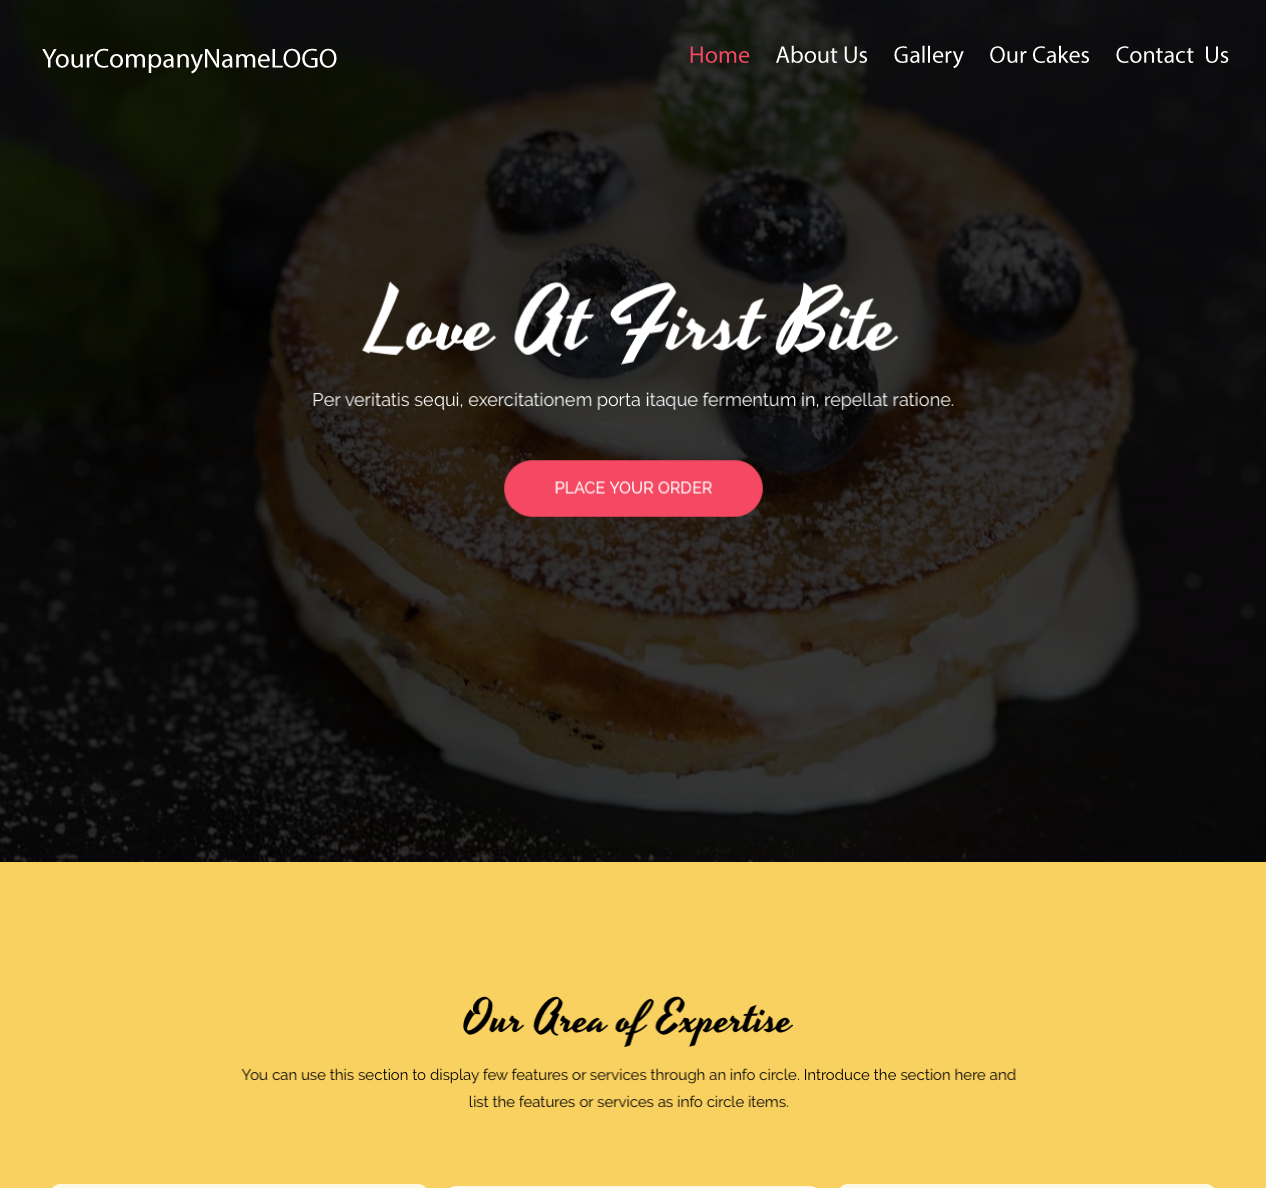 Center Image of Bakery Website